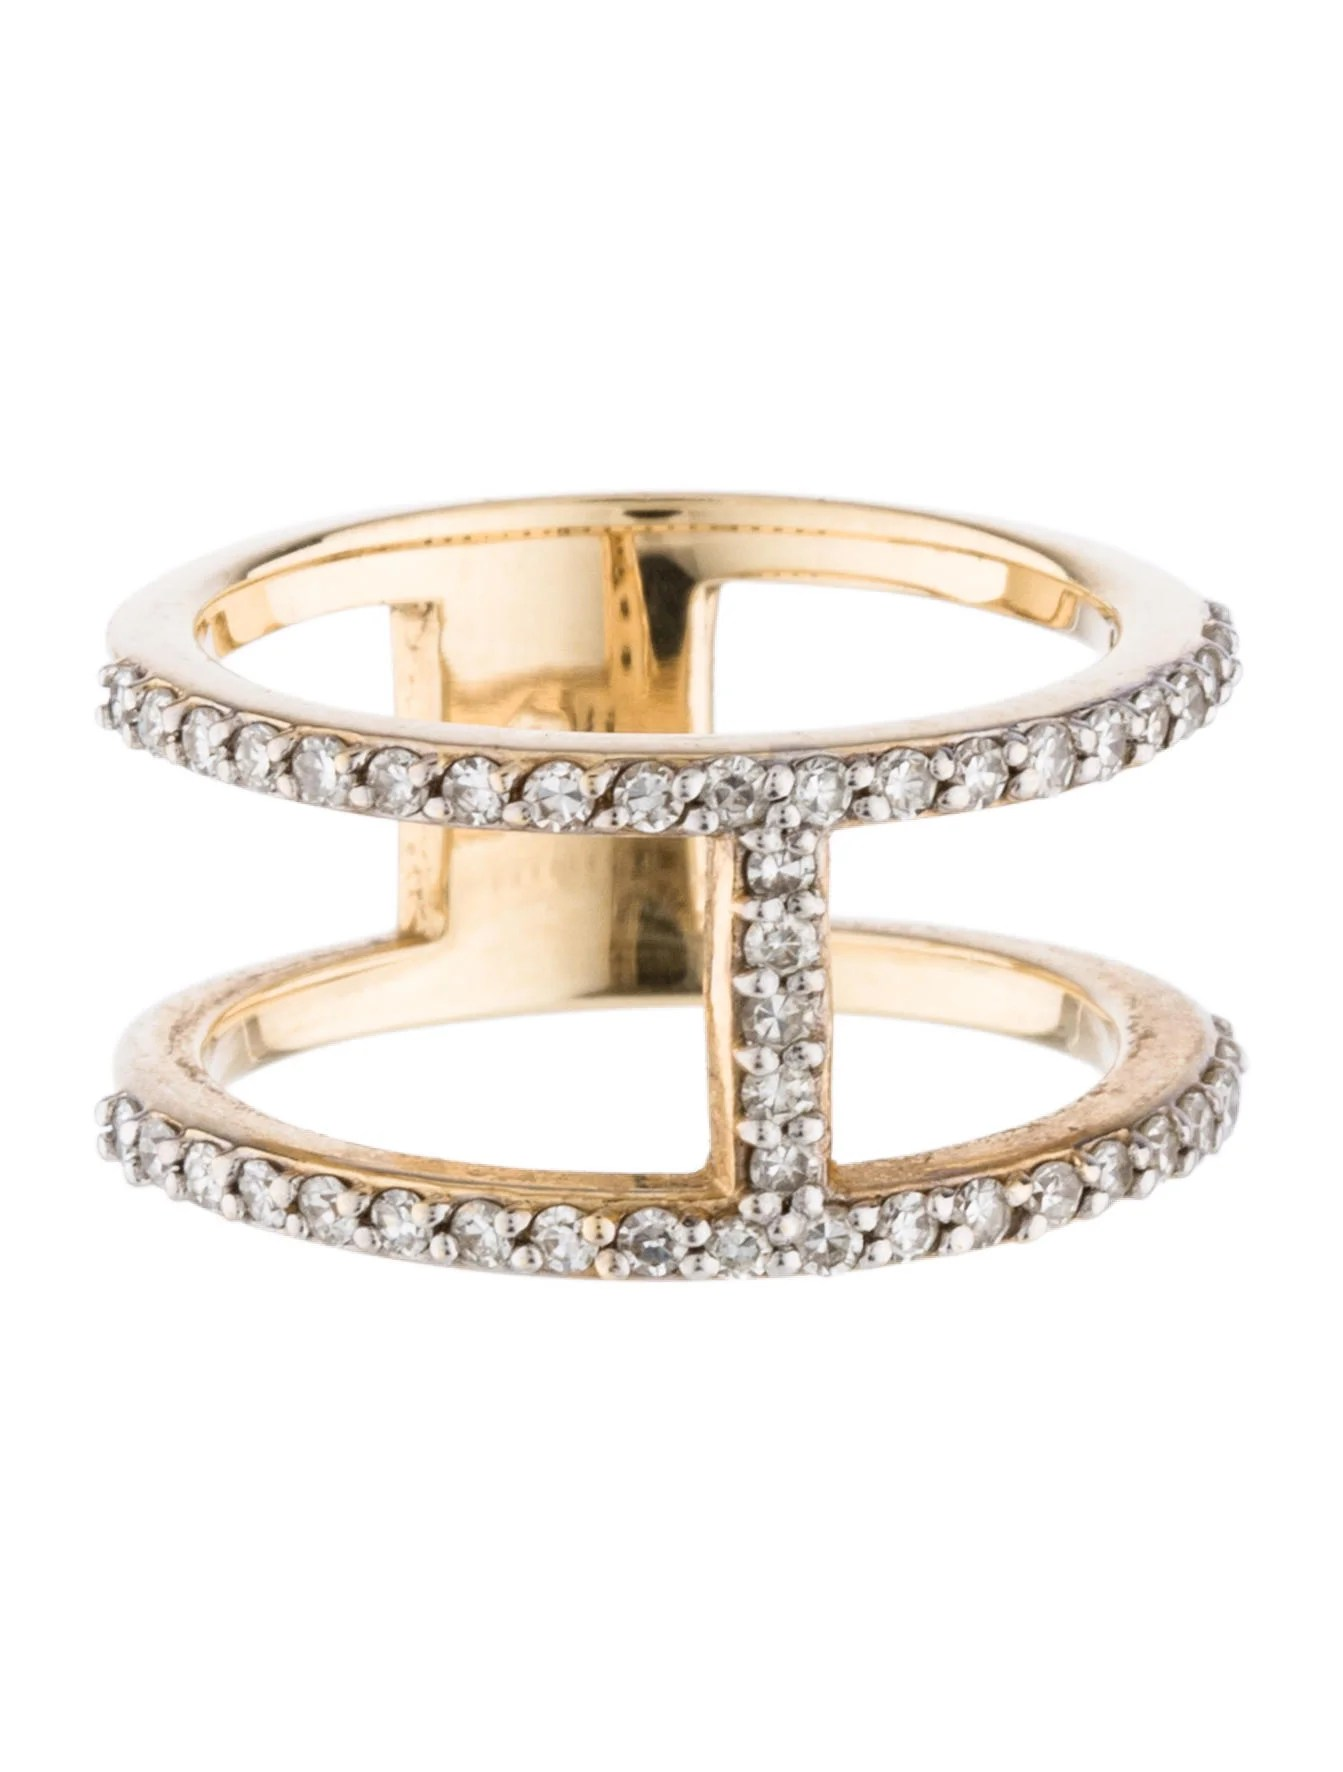 14k Diamond Cage Ring Band  Rings  Rring31916  The Realreal